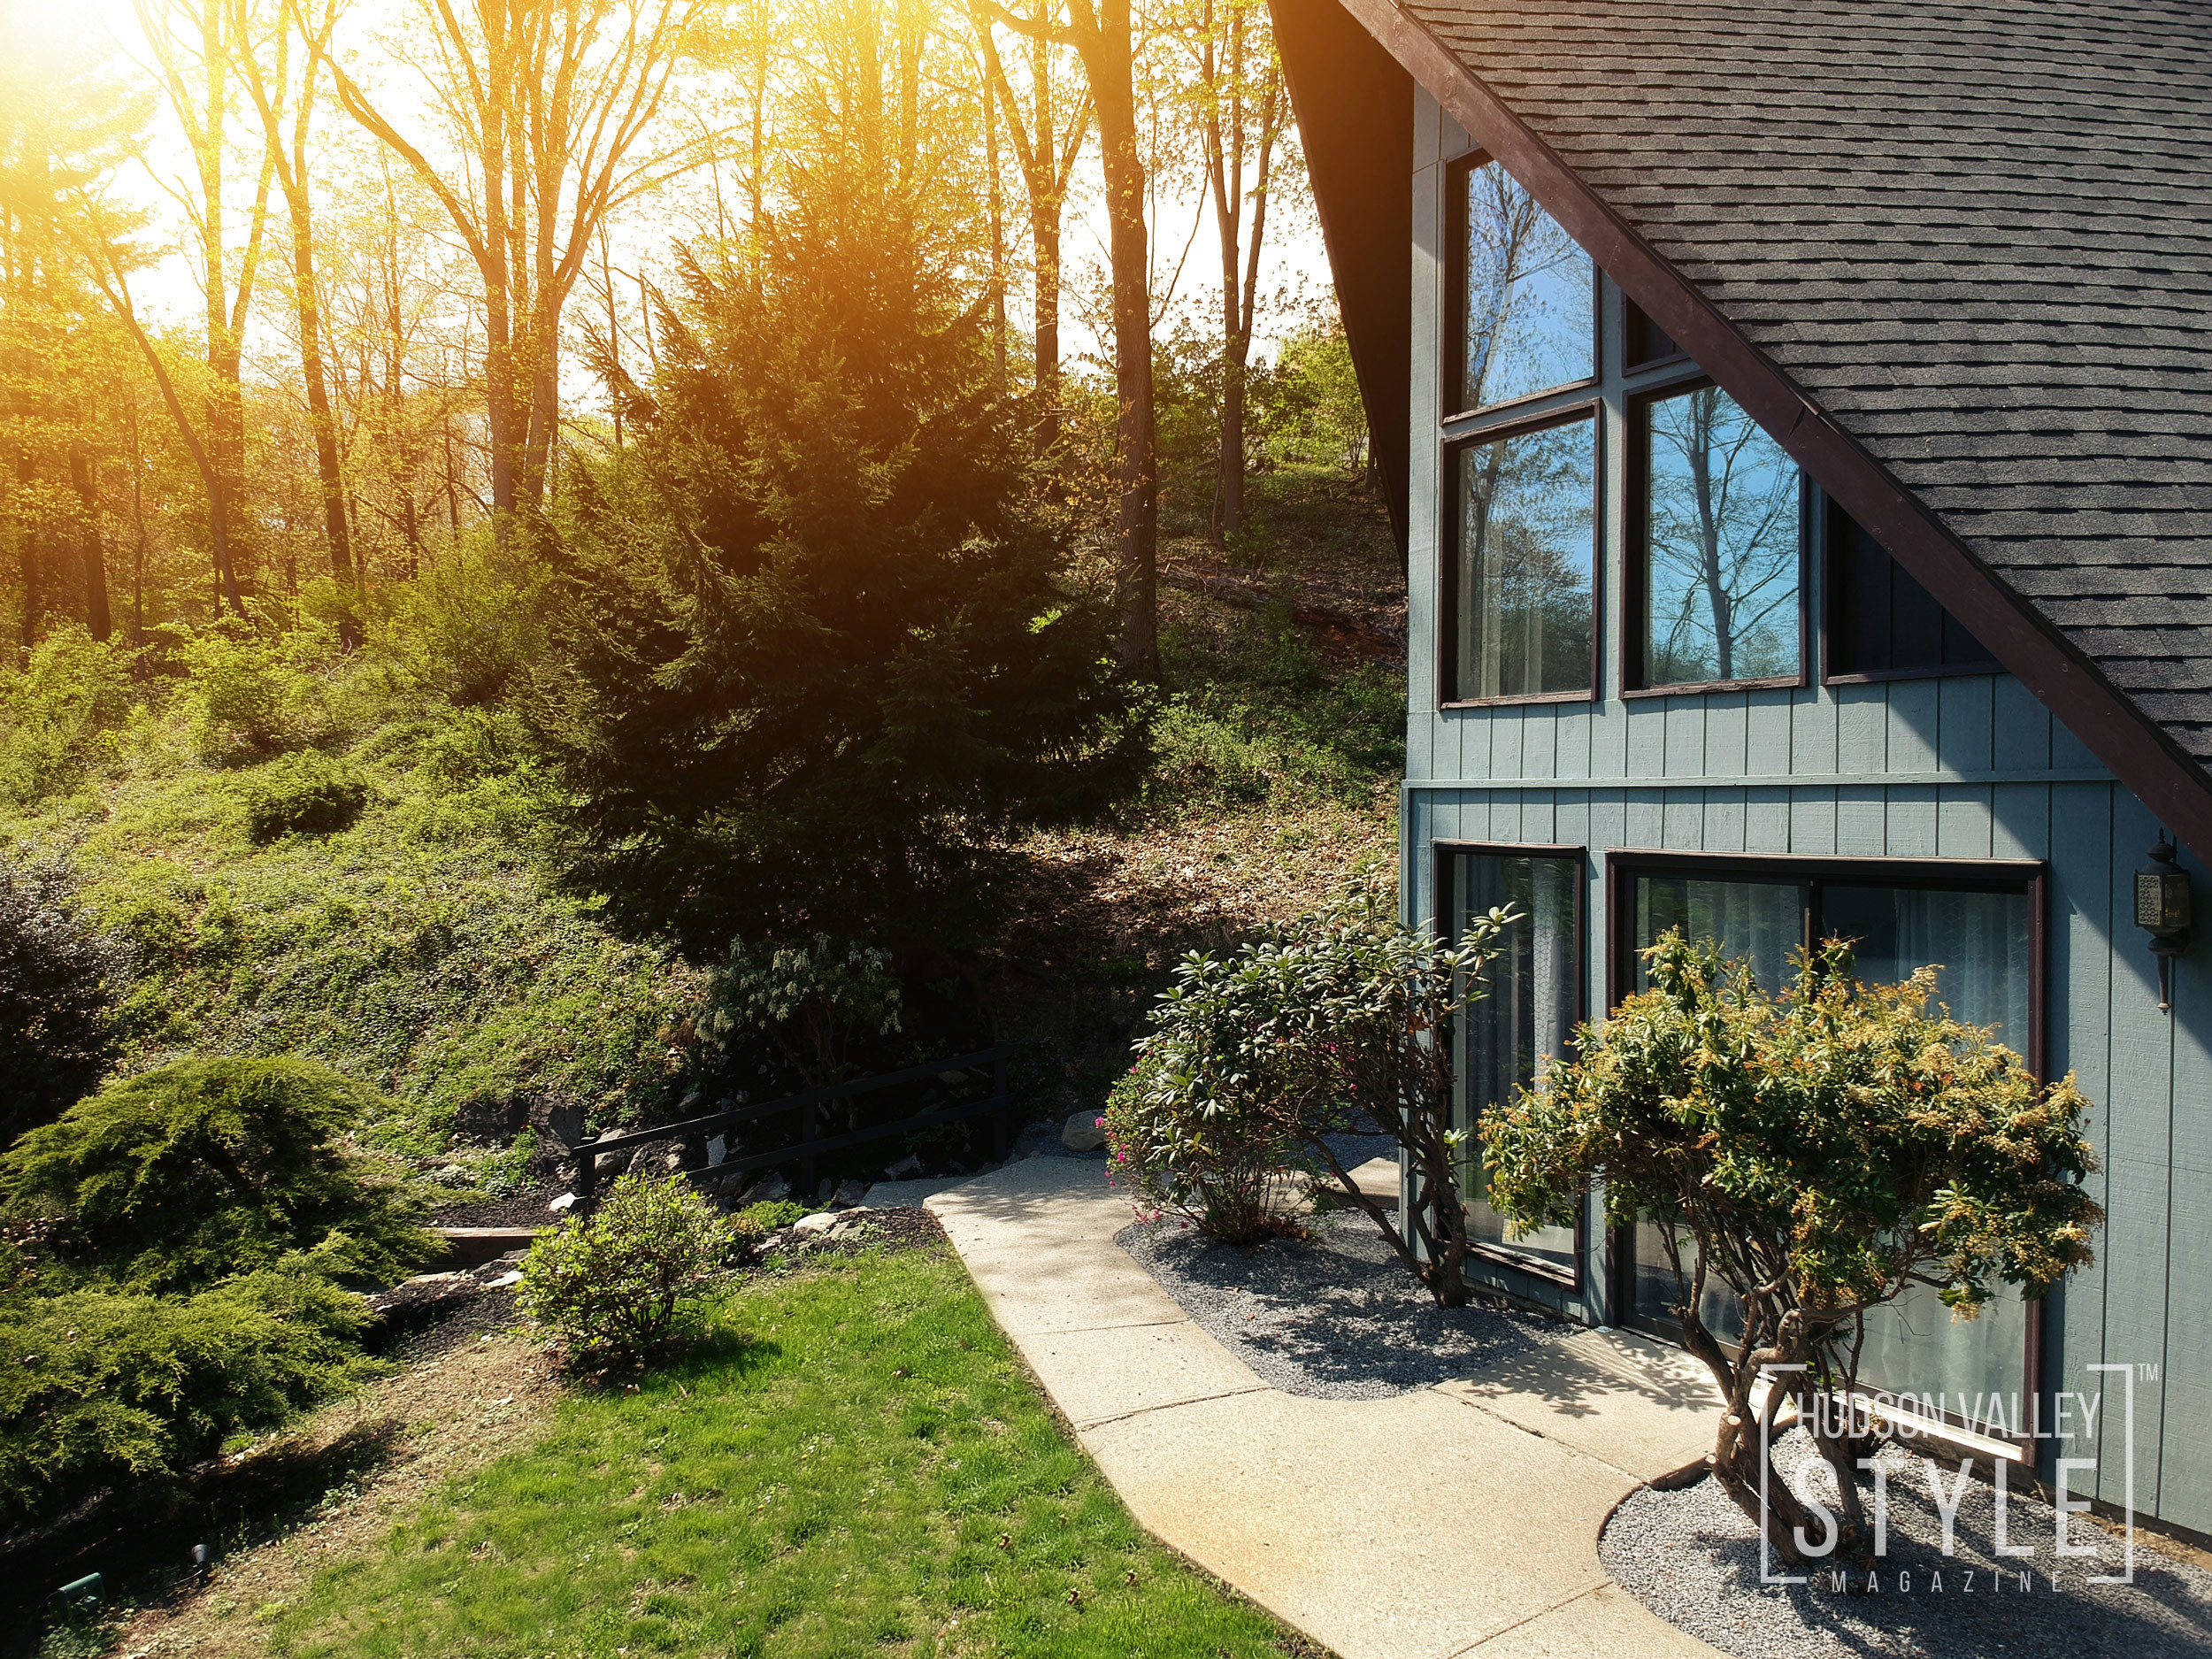 Villa 9W - Architectural Marvel and a Modern Luxury Vacation Getaway in the Hudson Valley